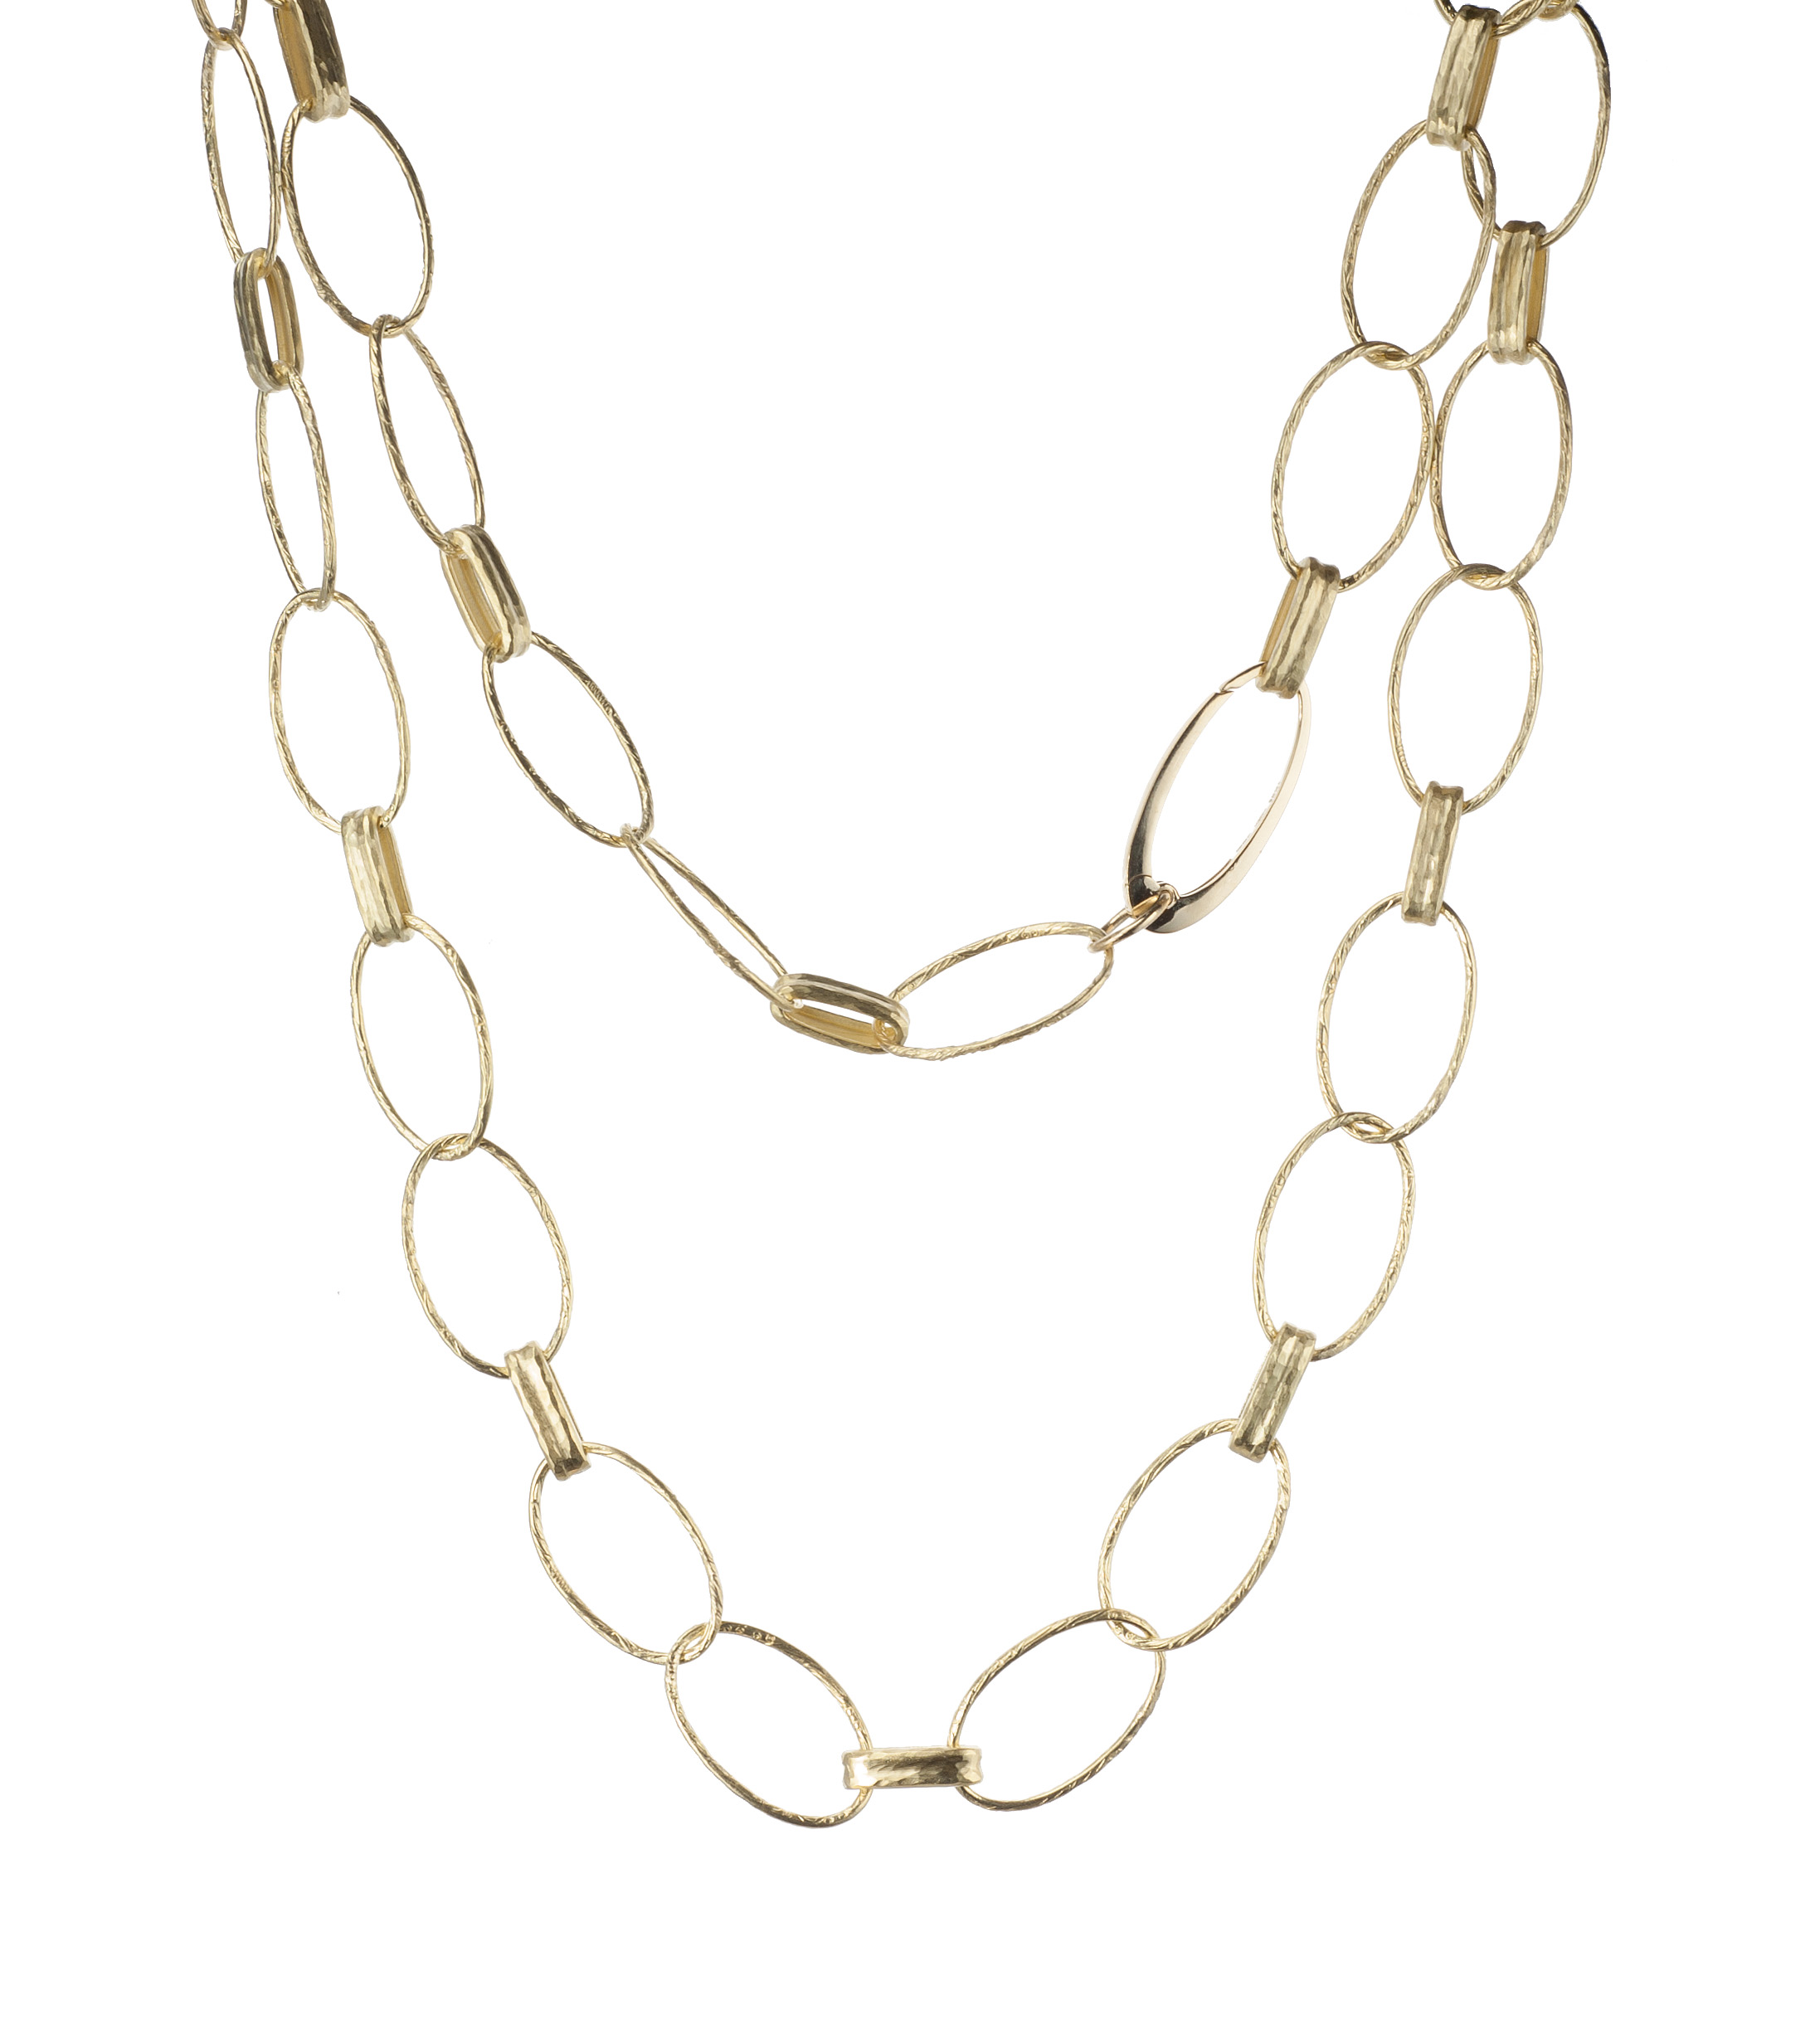 Hammered link 18-karat yellow gold necklace